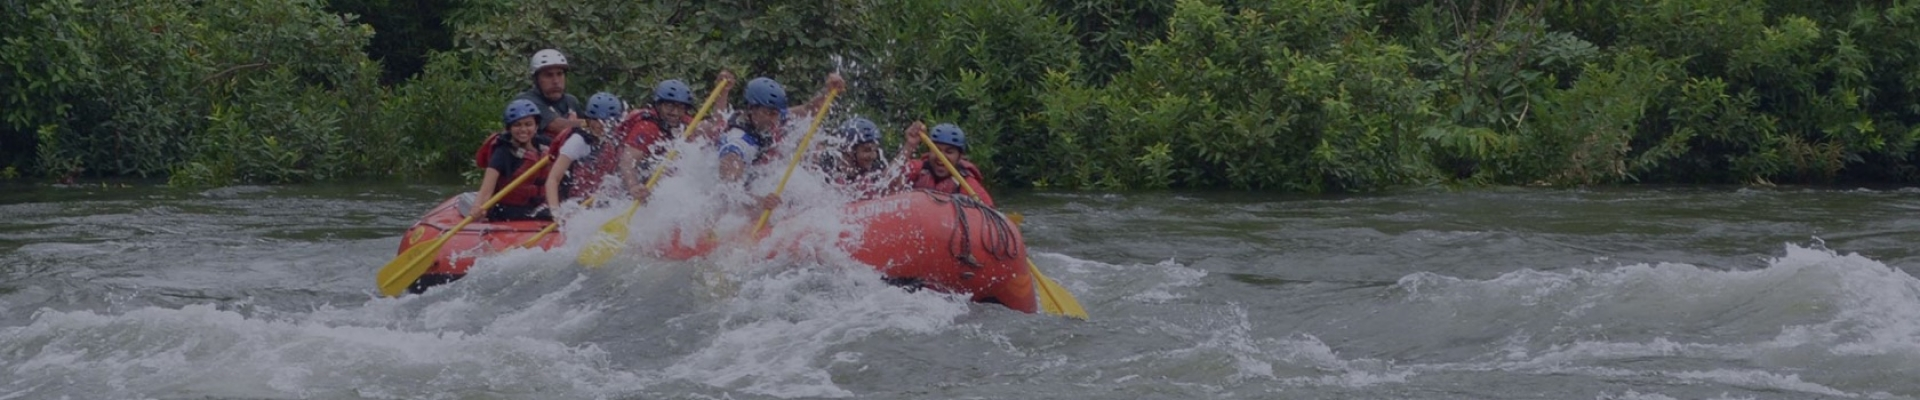 Rafting in Goa , India